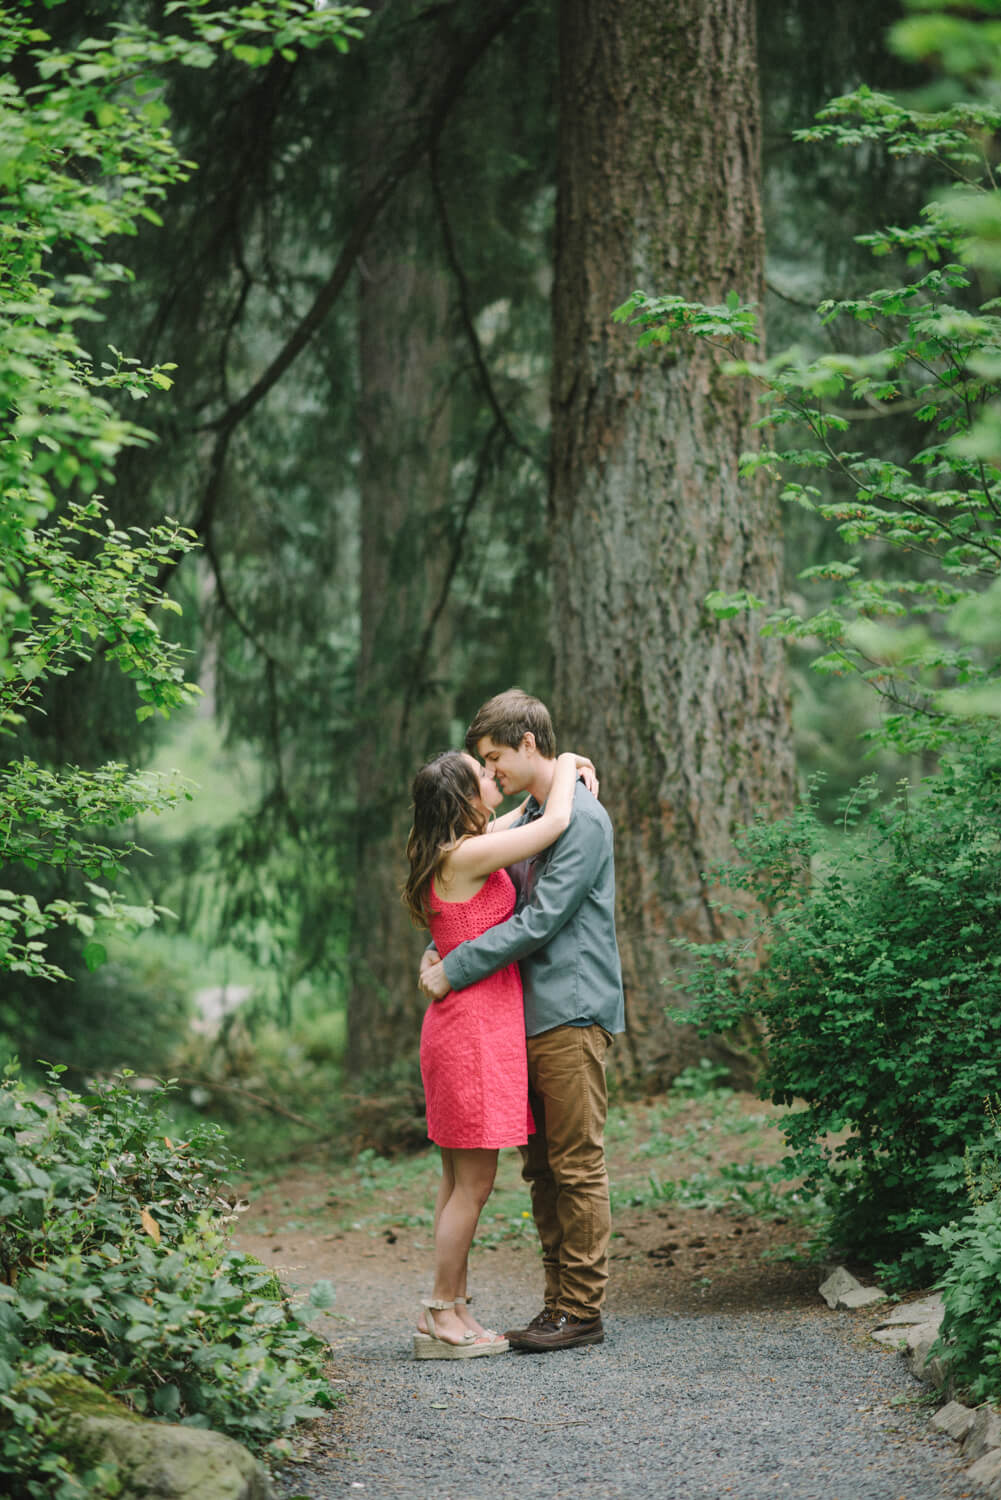 portland-engagement-photography-washington-park-hoyt-arboretum-shelley-marie-photo-214-Edit.jpg